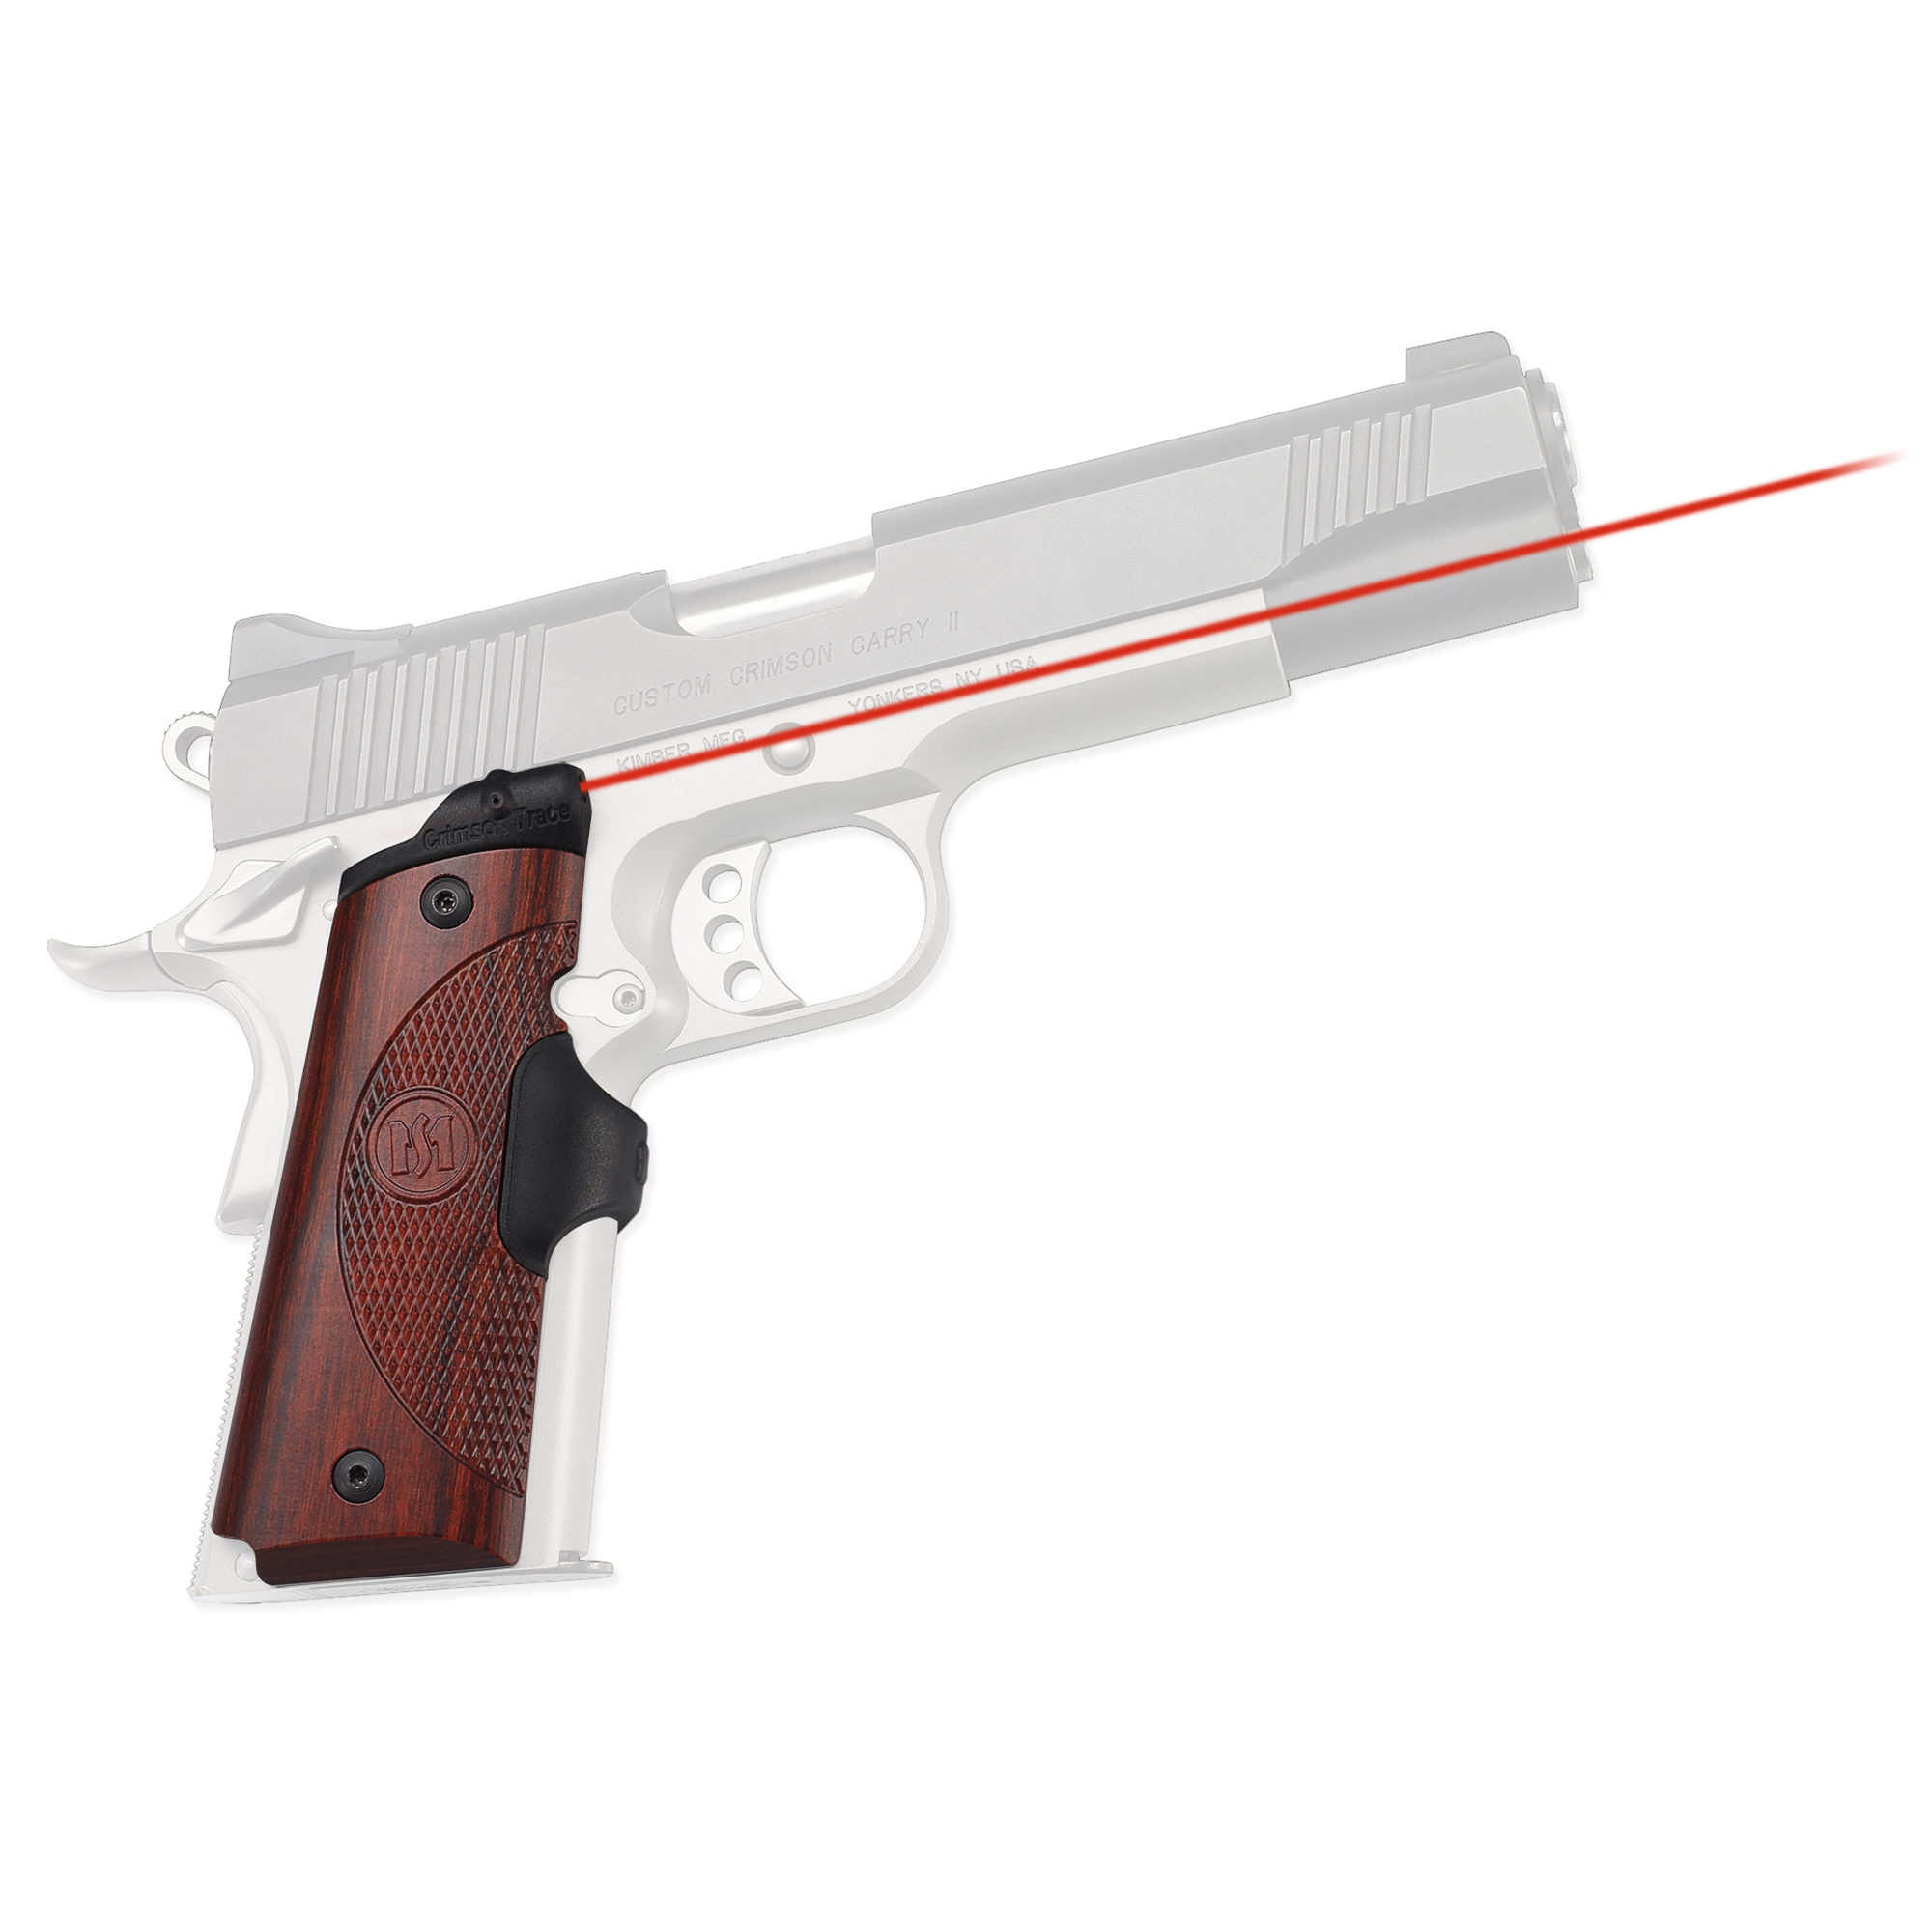 """Machined to fit seamlessly while bringing both artistry and rugged engineering to John Browning's classic 1911 design"""" Master Series(TM) Lasergrips(R) are sure to impress. Featuring ergonomic and beautiful Rosewood side panels with a rubber overmolded activation button; these are the ultimate laser sights. Standard to Crimson Trace Lasergrips"""" the LG-901 features Instinctive Activation(TM). This means that the laser sight automatically springs to life when the weapon is held in a natural firing grip."""